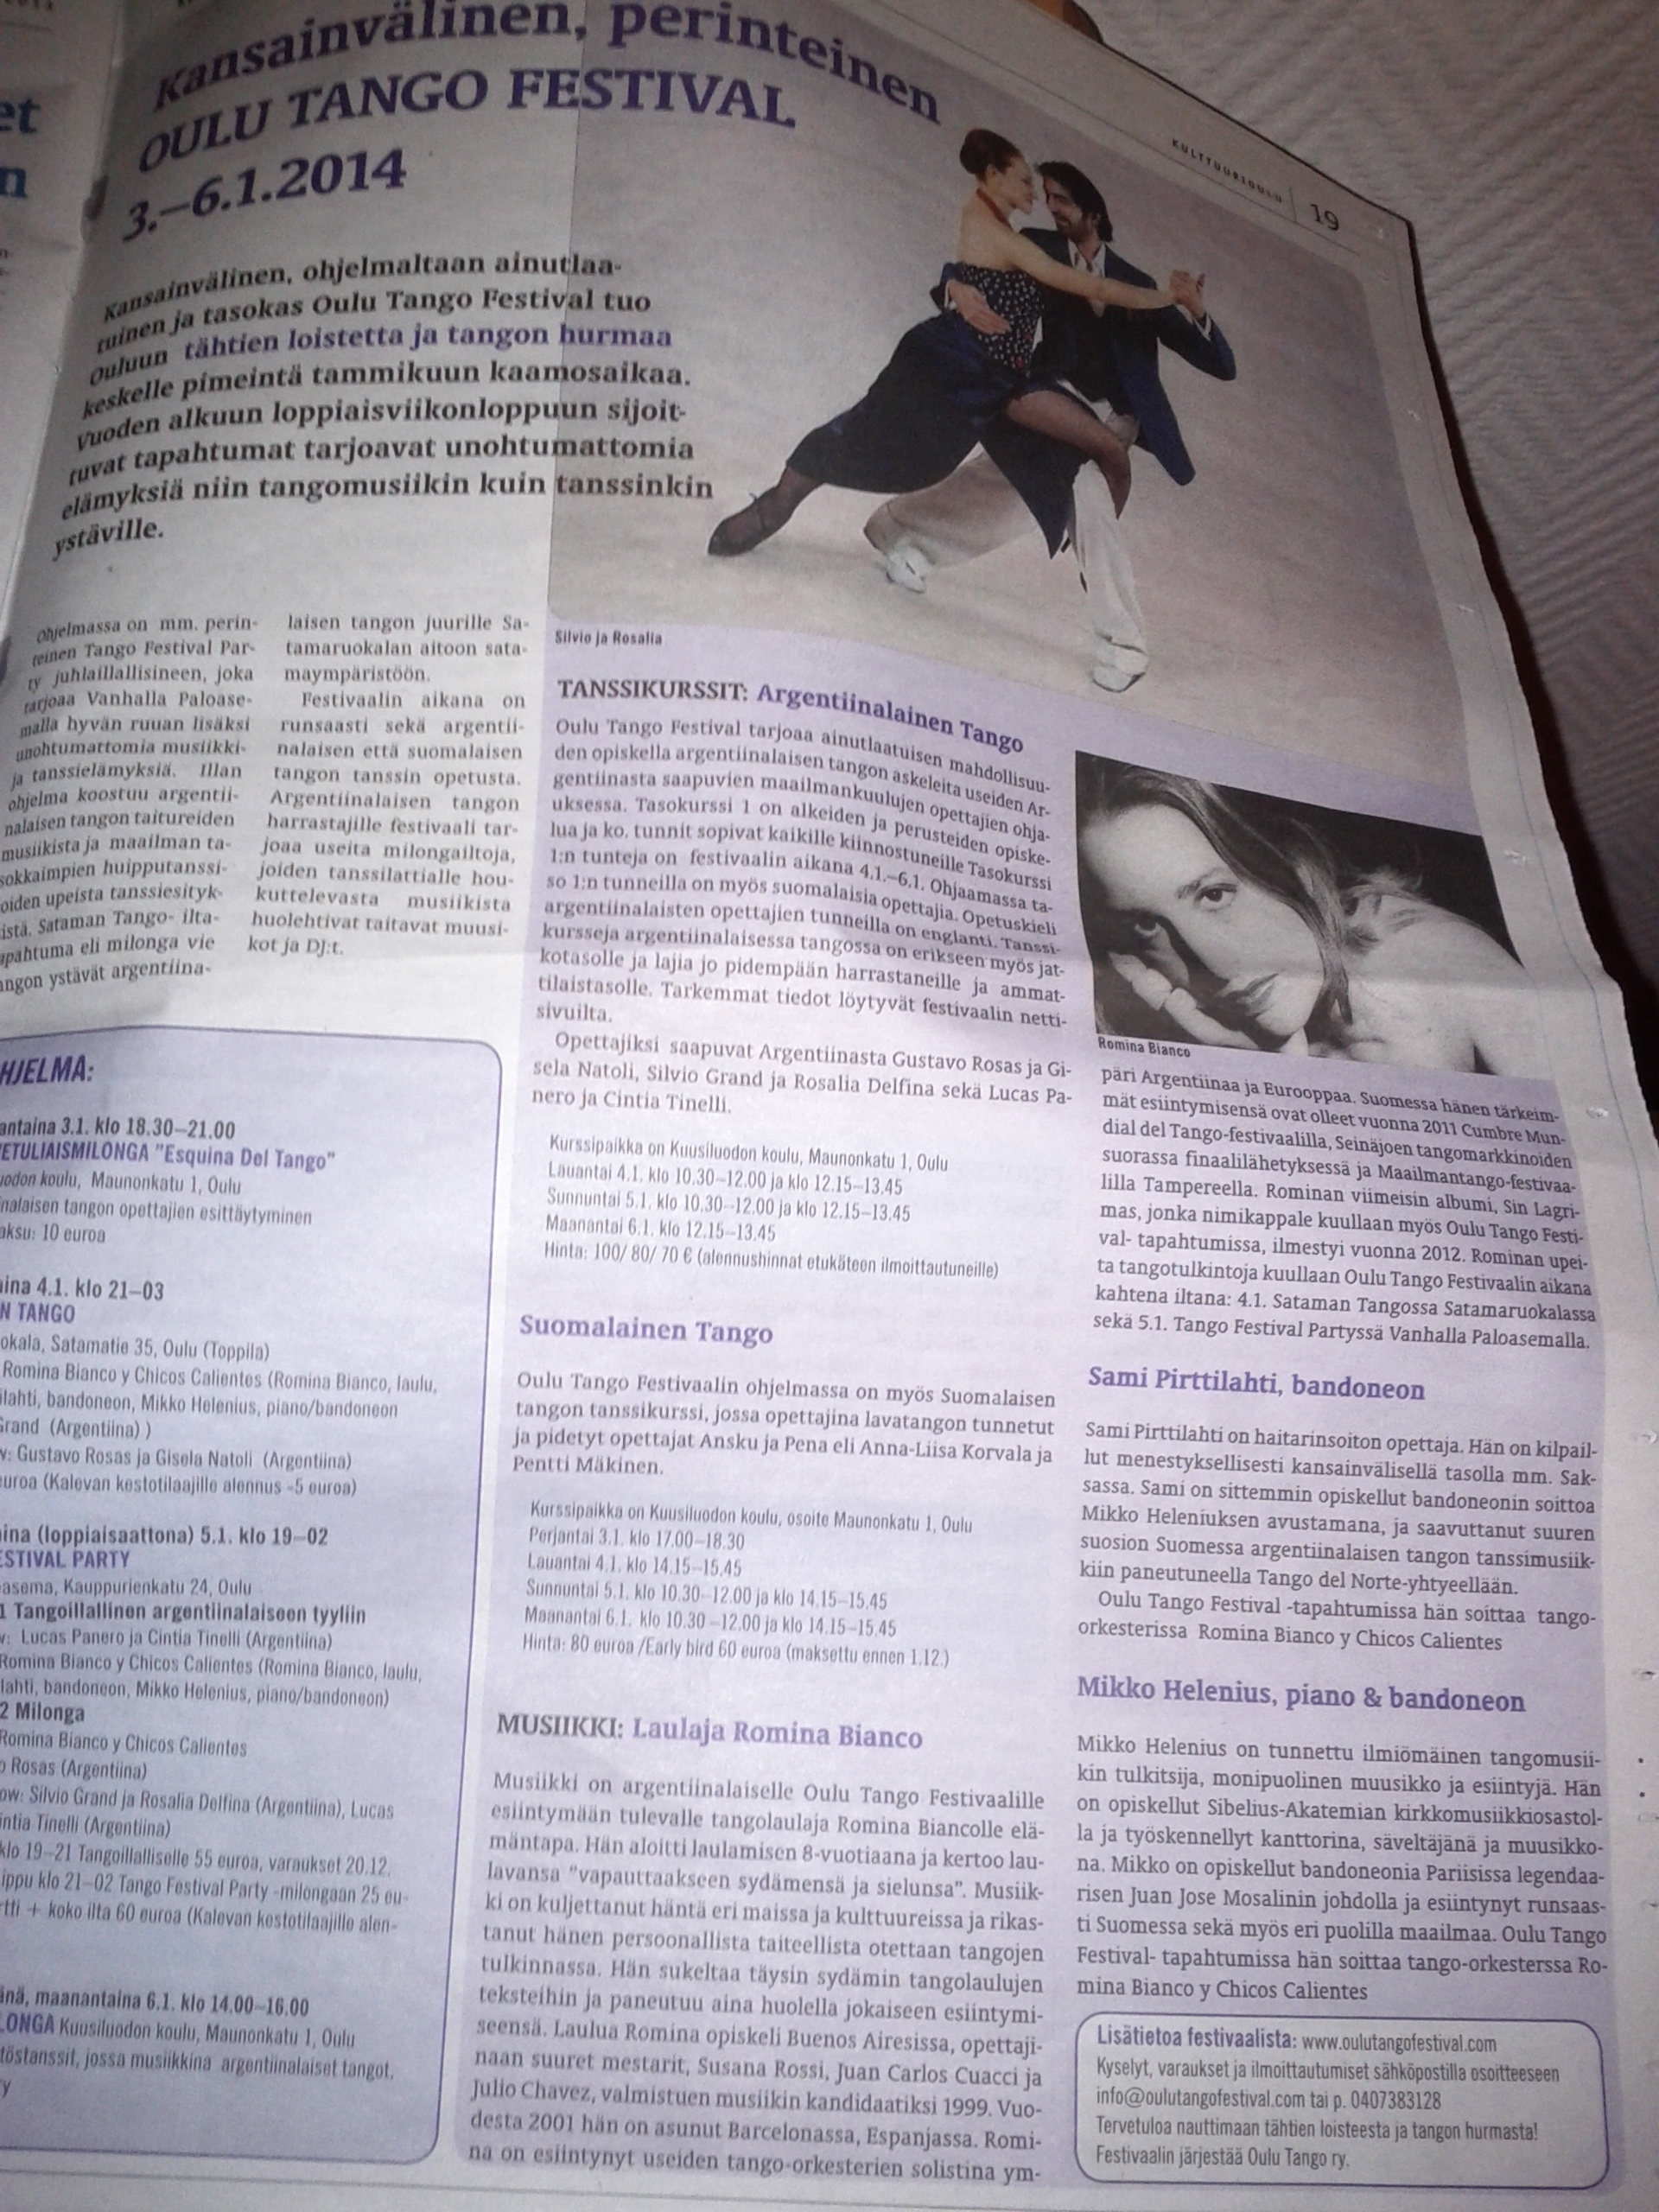 Finnish Press, Oulu Tango Festival